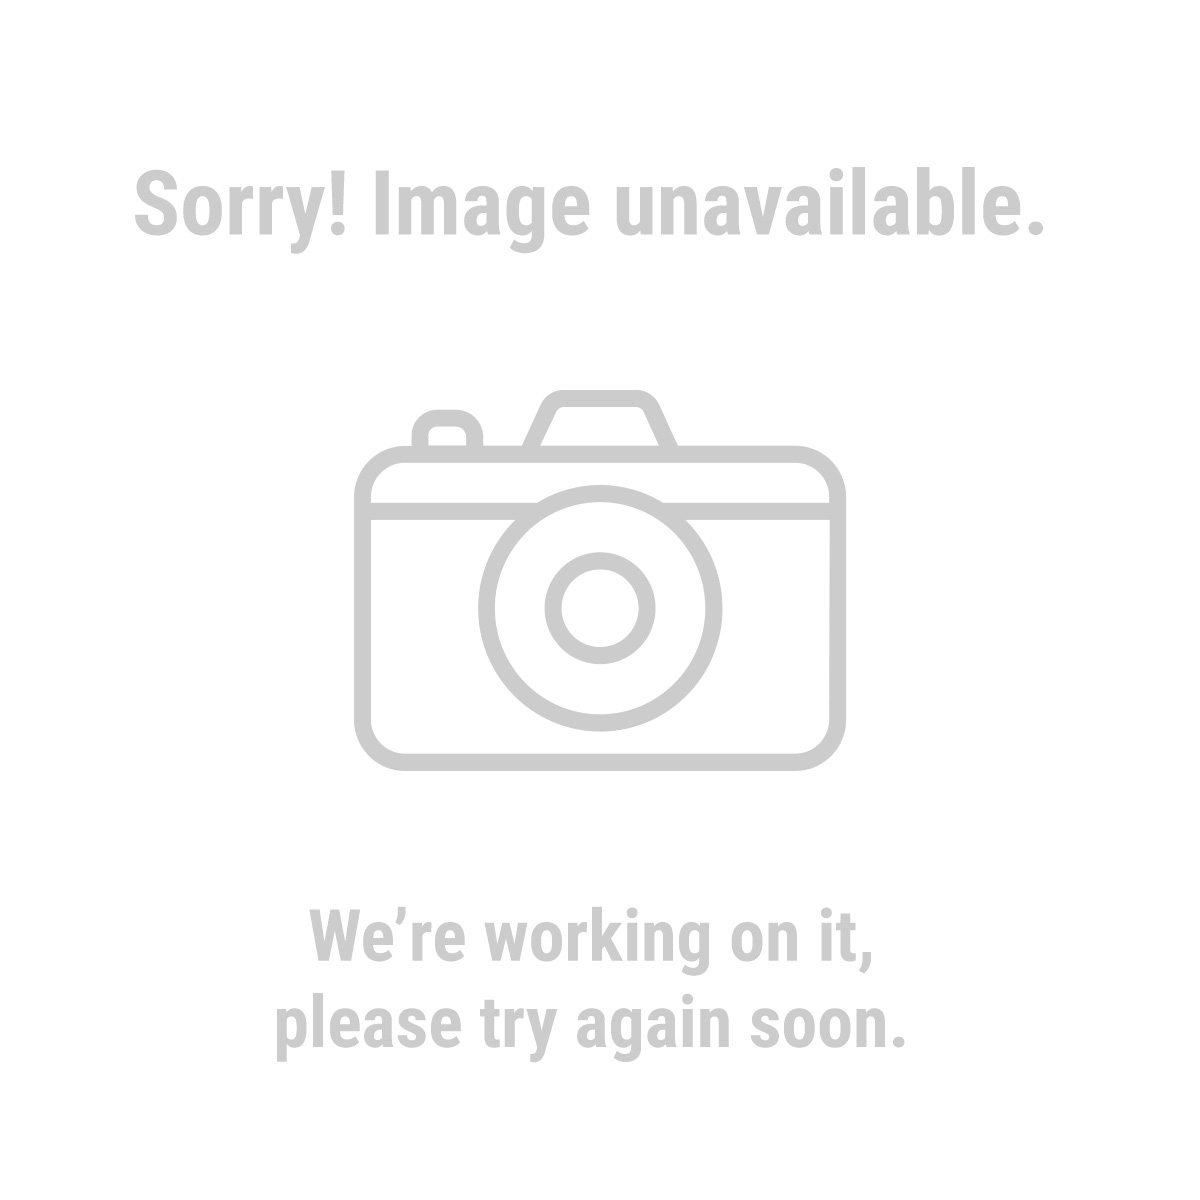 Pittsburgh® 62173 25 Pc SAE & Metric Hex Key Set